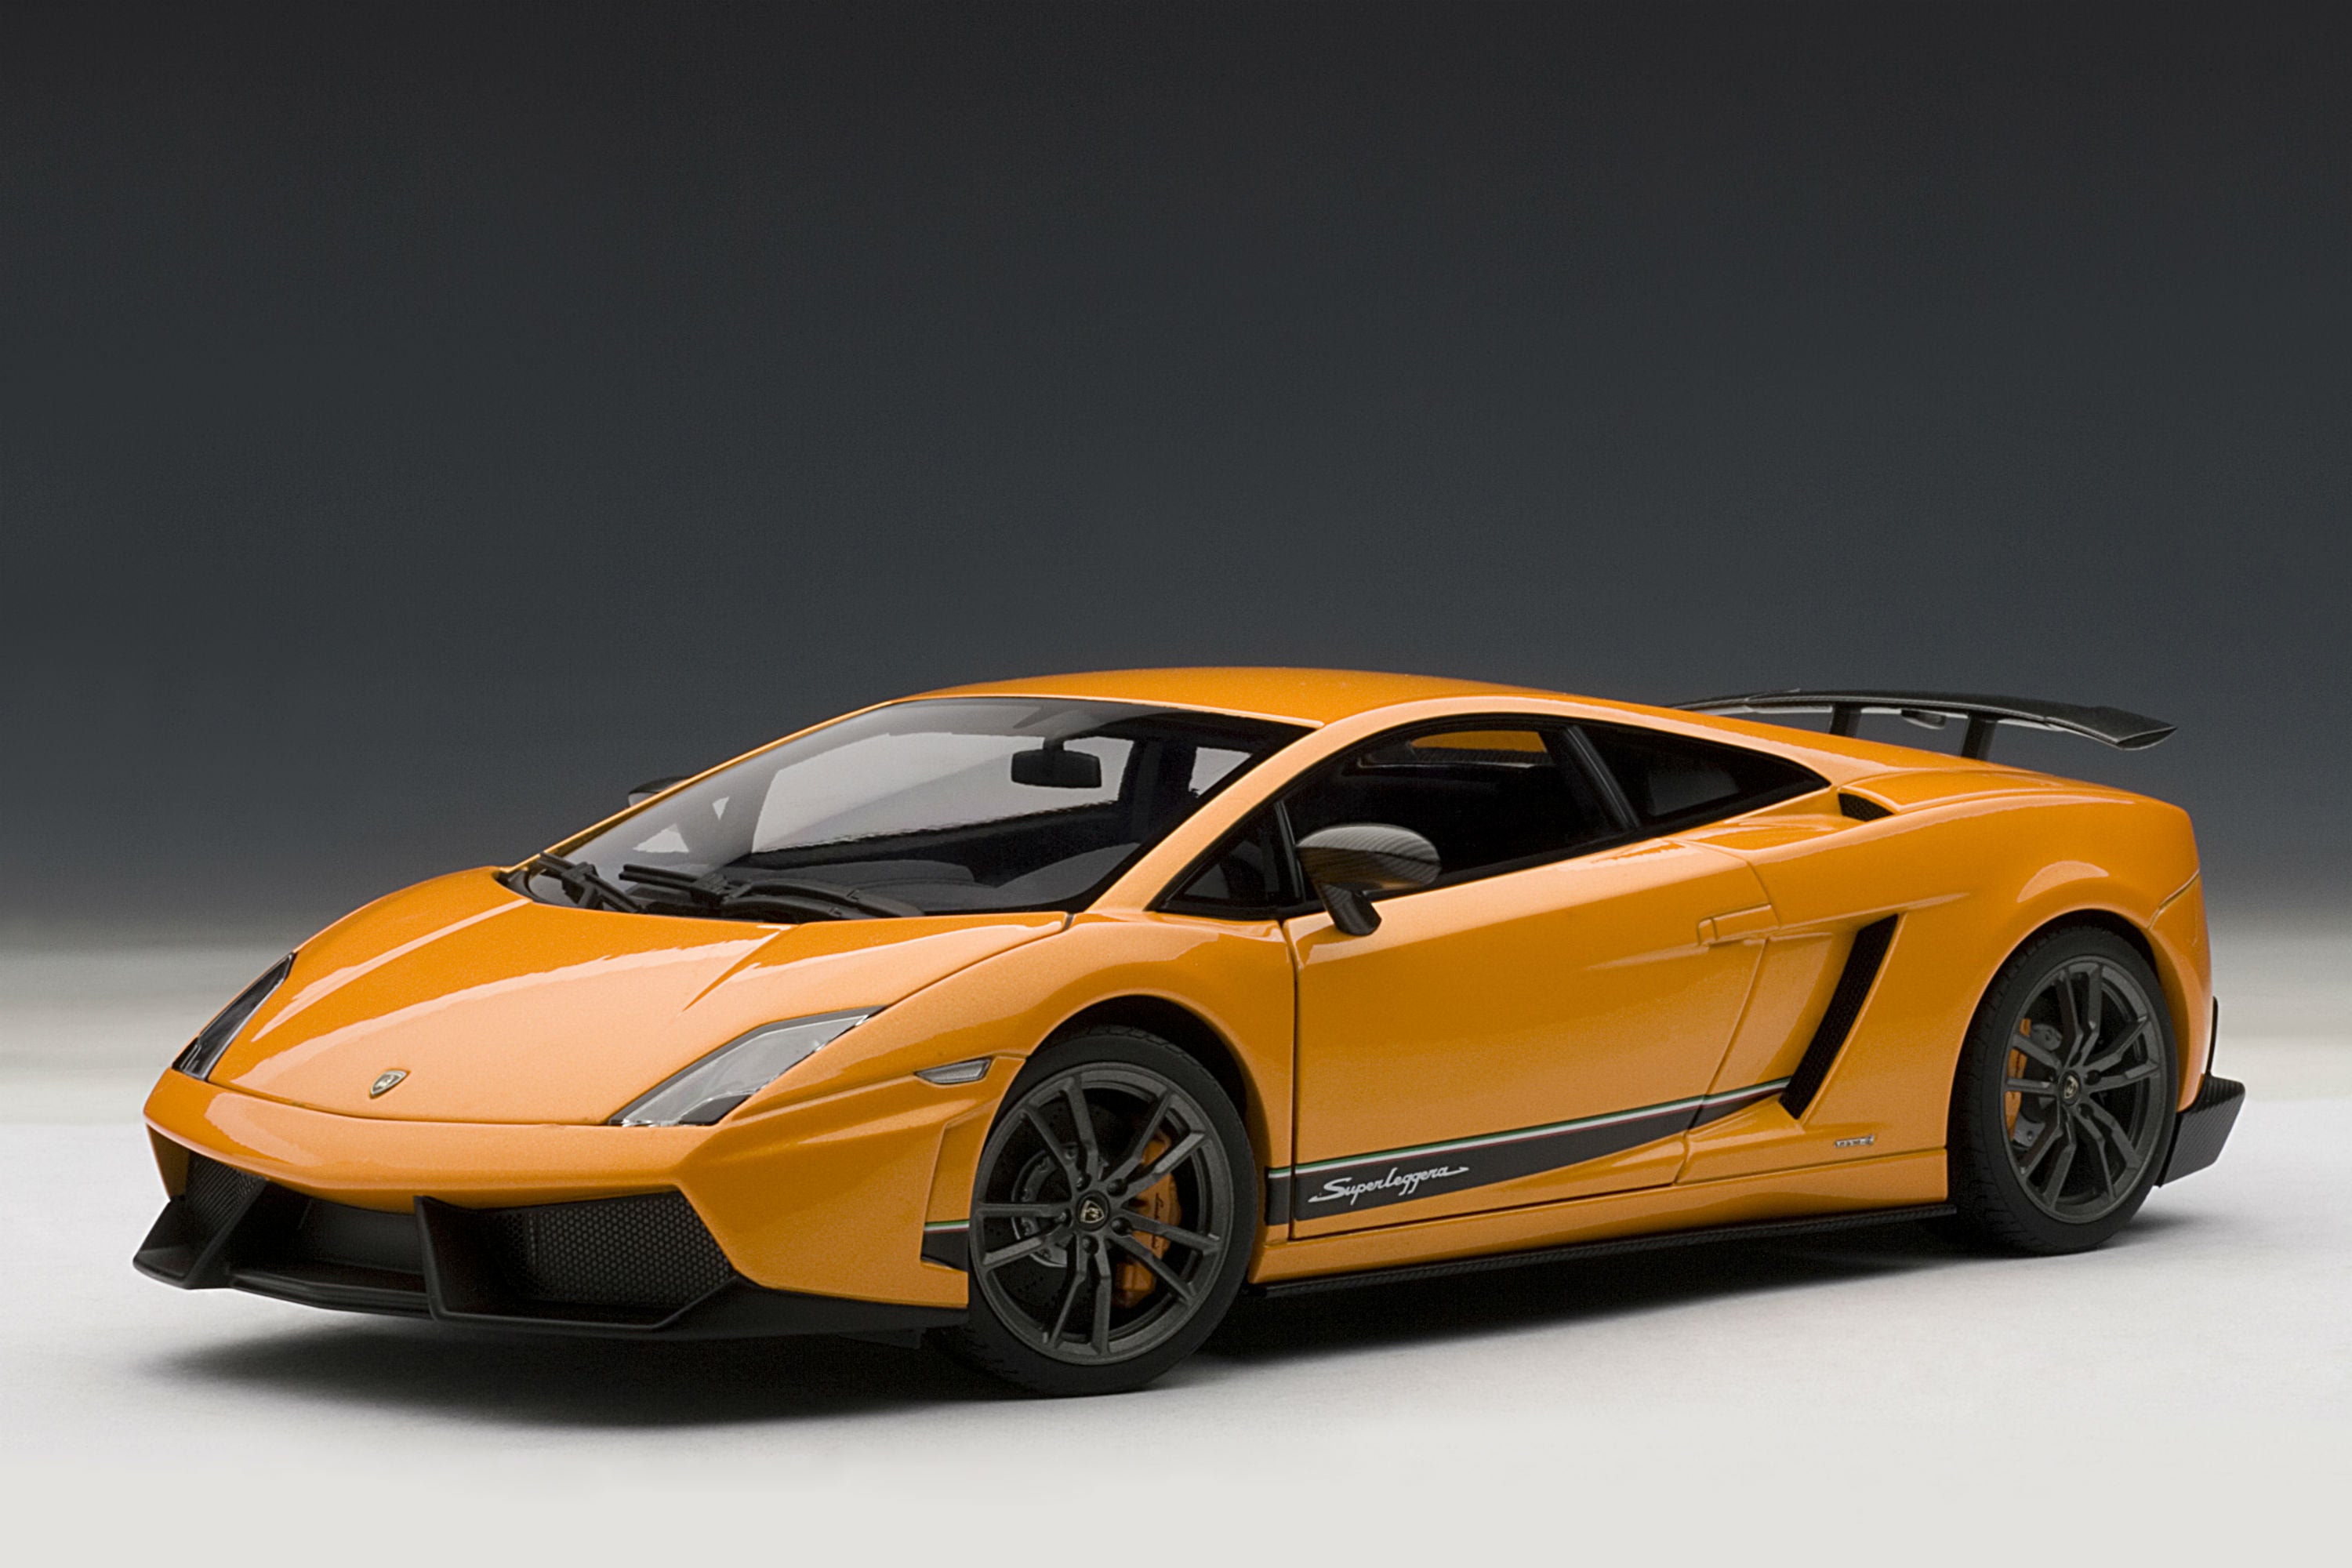 Lamborghini Gallardo LP 570 4 Superleggera | 1:18 Scale Diecast Model Car